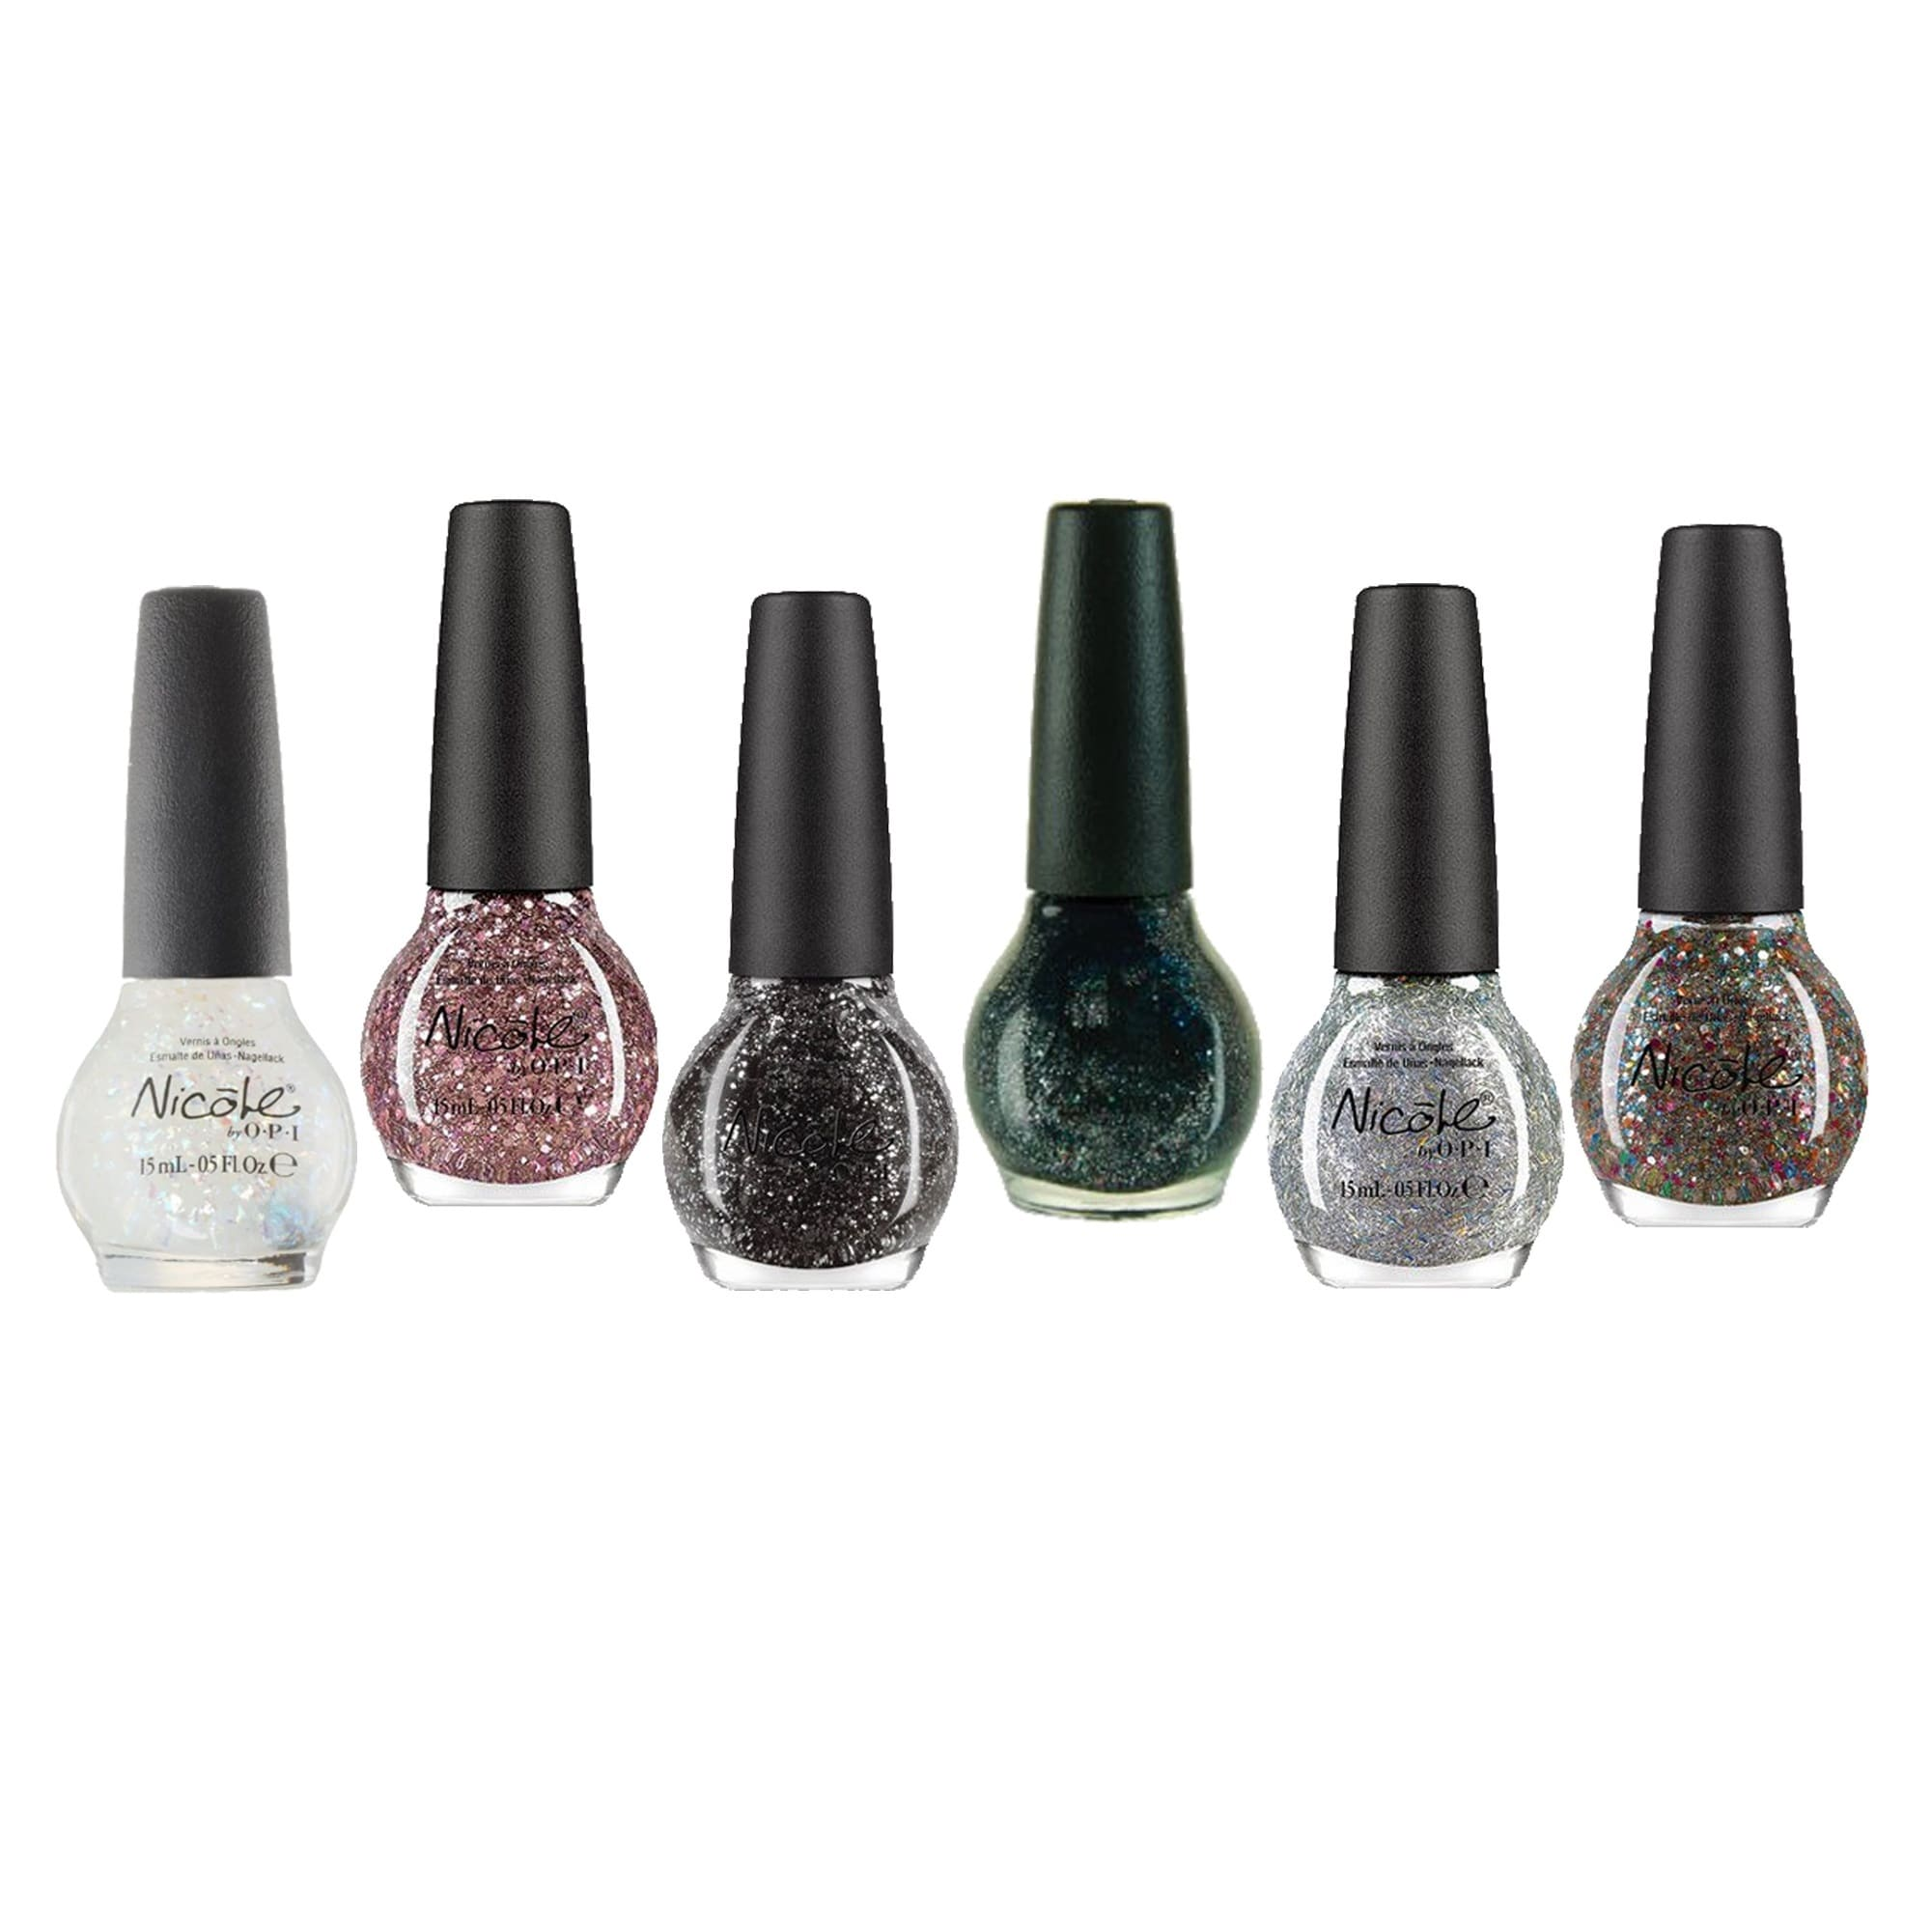 Nicole By Opi Glitter Nail Polish 6 Piece Set Free Shipping On Orders Over 45 11211632